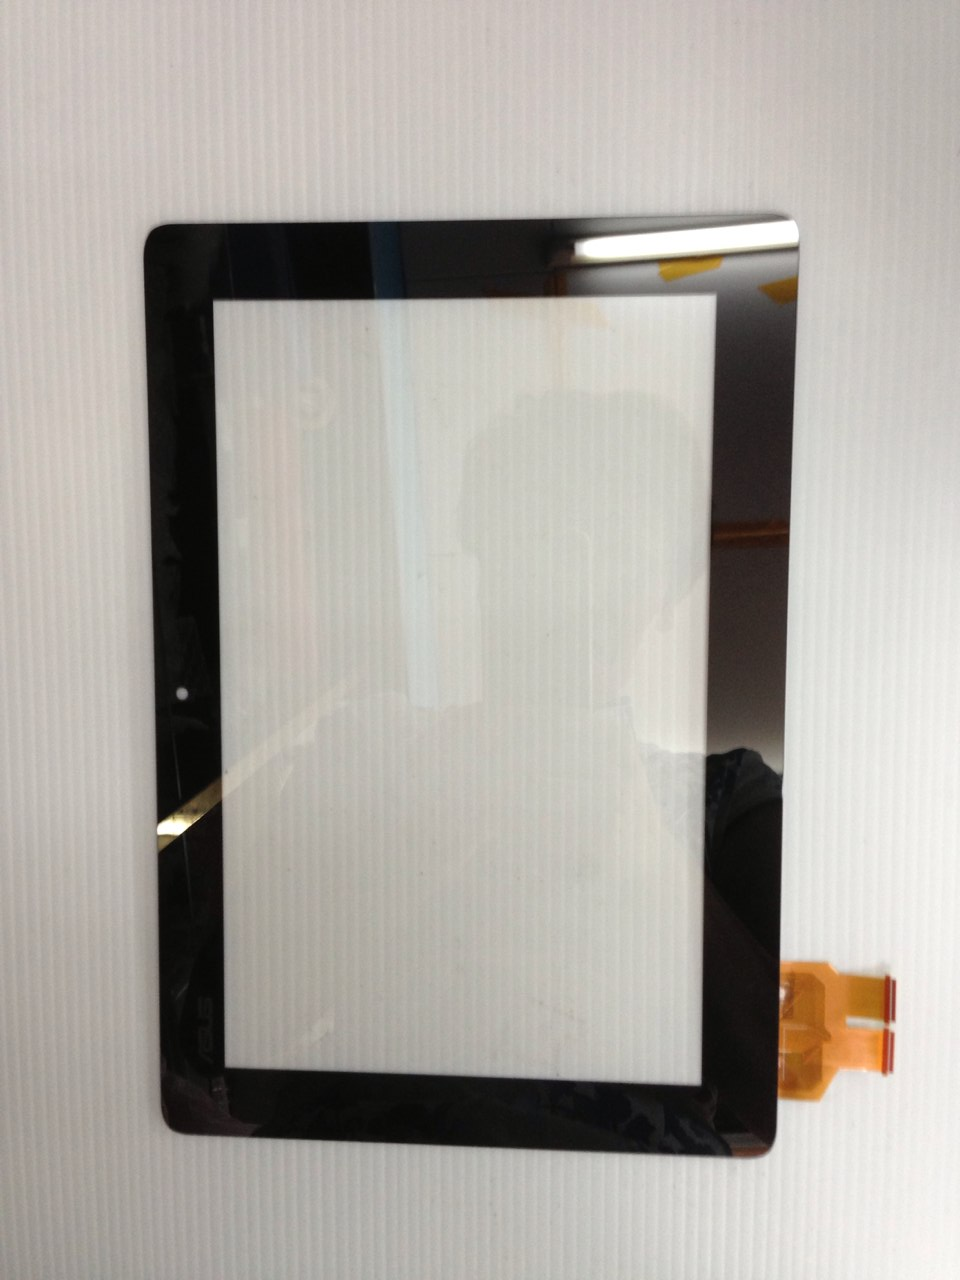 Original For ASUS PadFone 2 A68 Station 203 Version Tablet New Outter Digitizer Touch Screen Glass Panel Lens Repair Replacement new for asus eee pad transformer prime tf201 version 1 0 touch screen glass digitizer panel tools